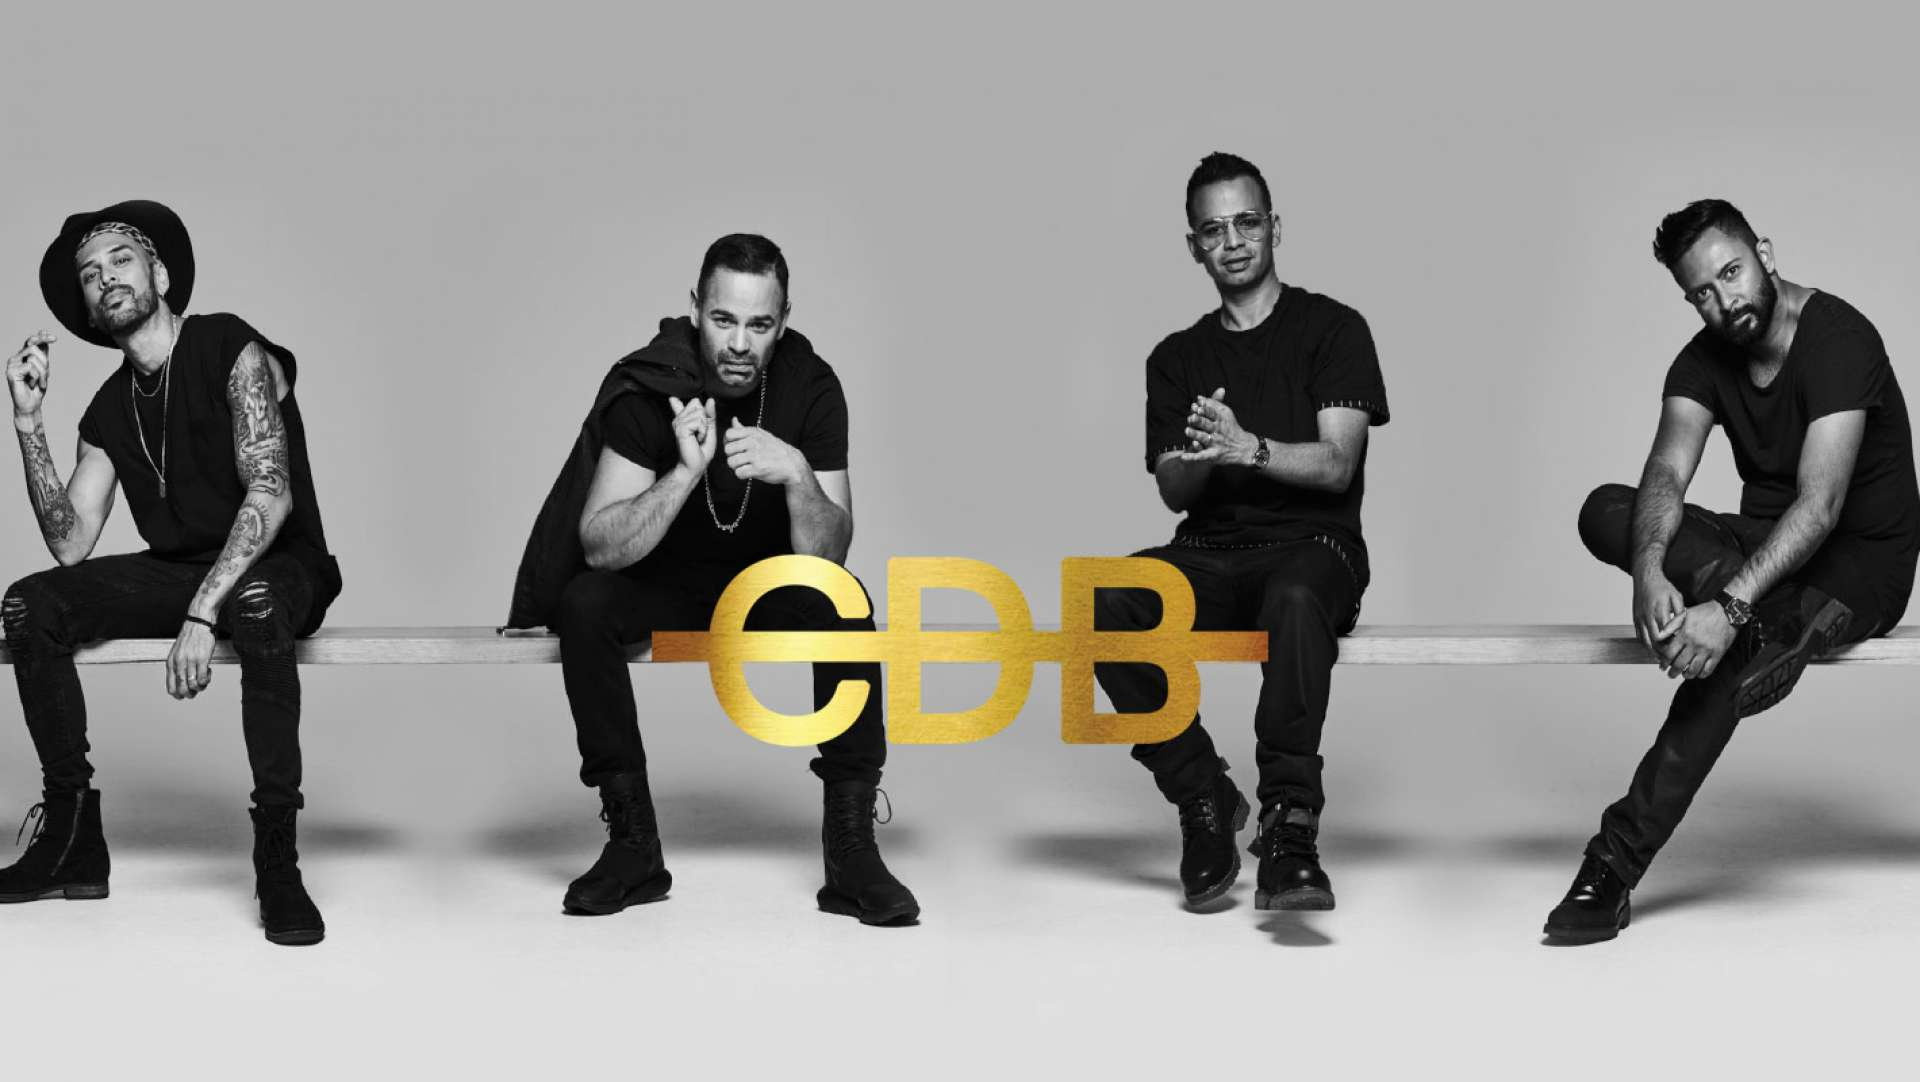 Australia's Best R&B mega group CDB new album showcases new logo by Studio Equator